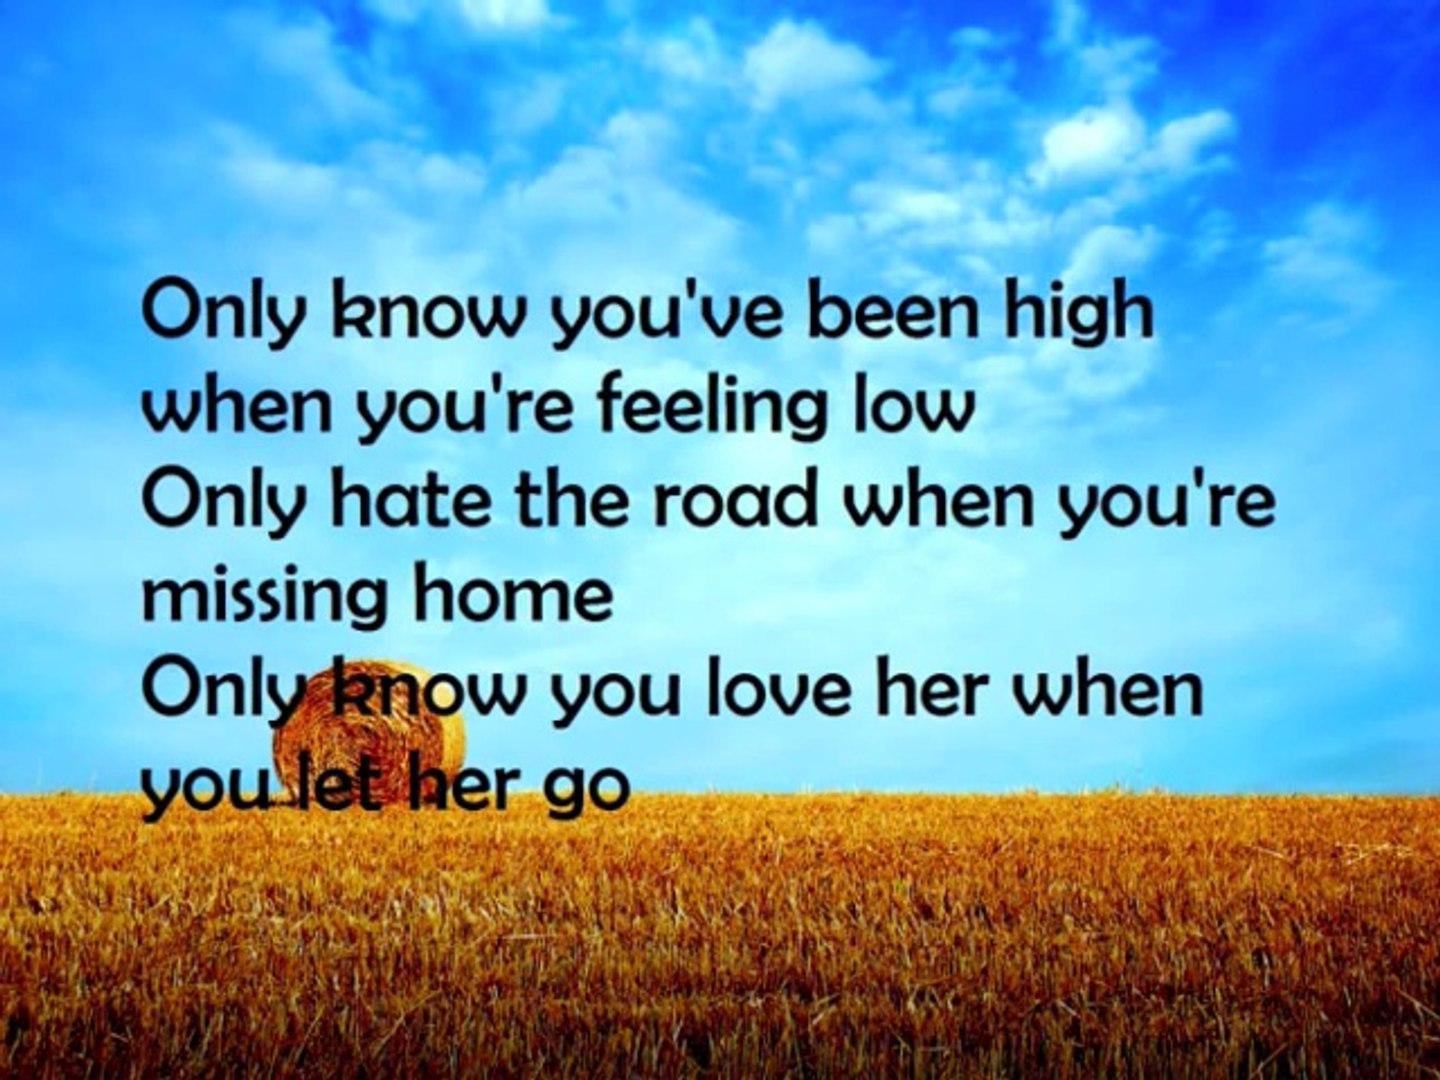 Passenger Let Her Go Lyrics Video Dailymotion